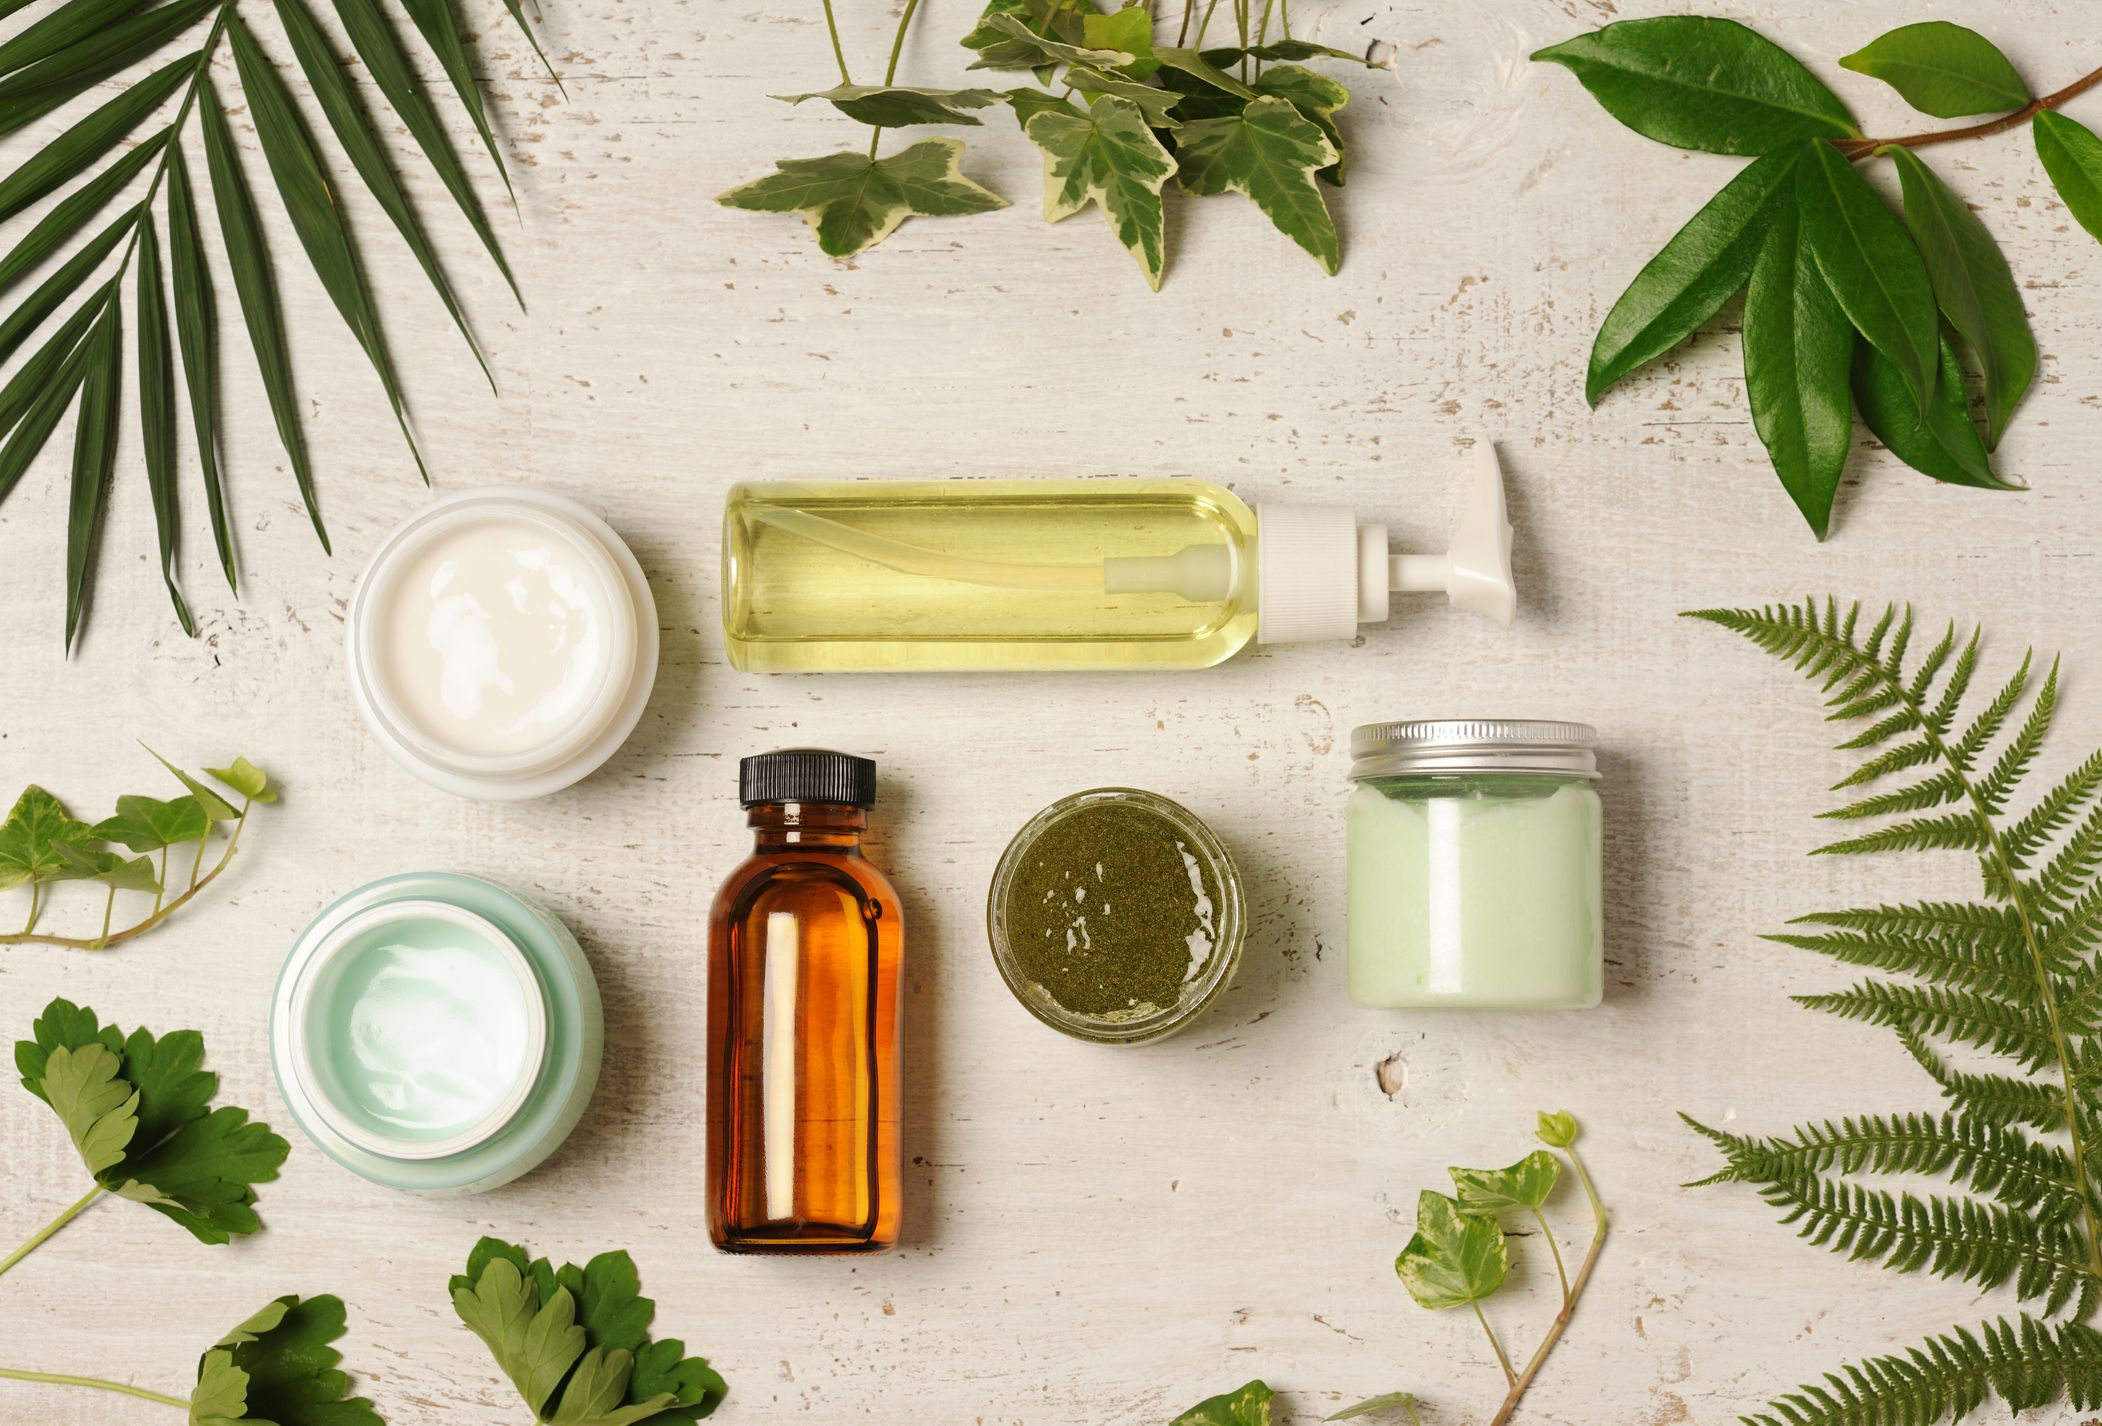 Clean Beauty: How Do You Know What's Worth Your Money?